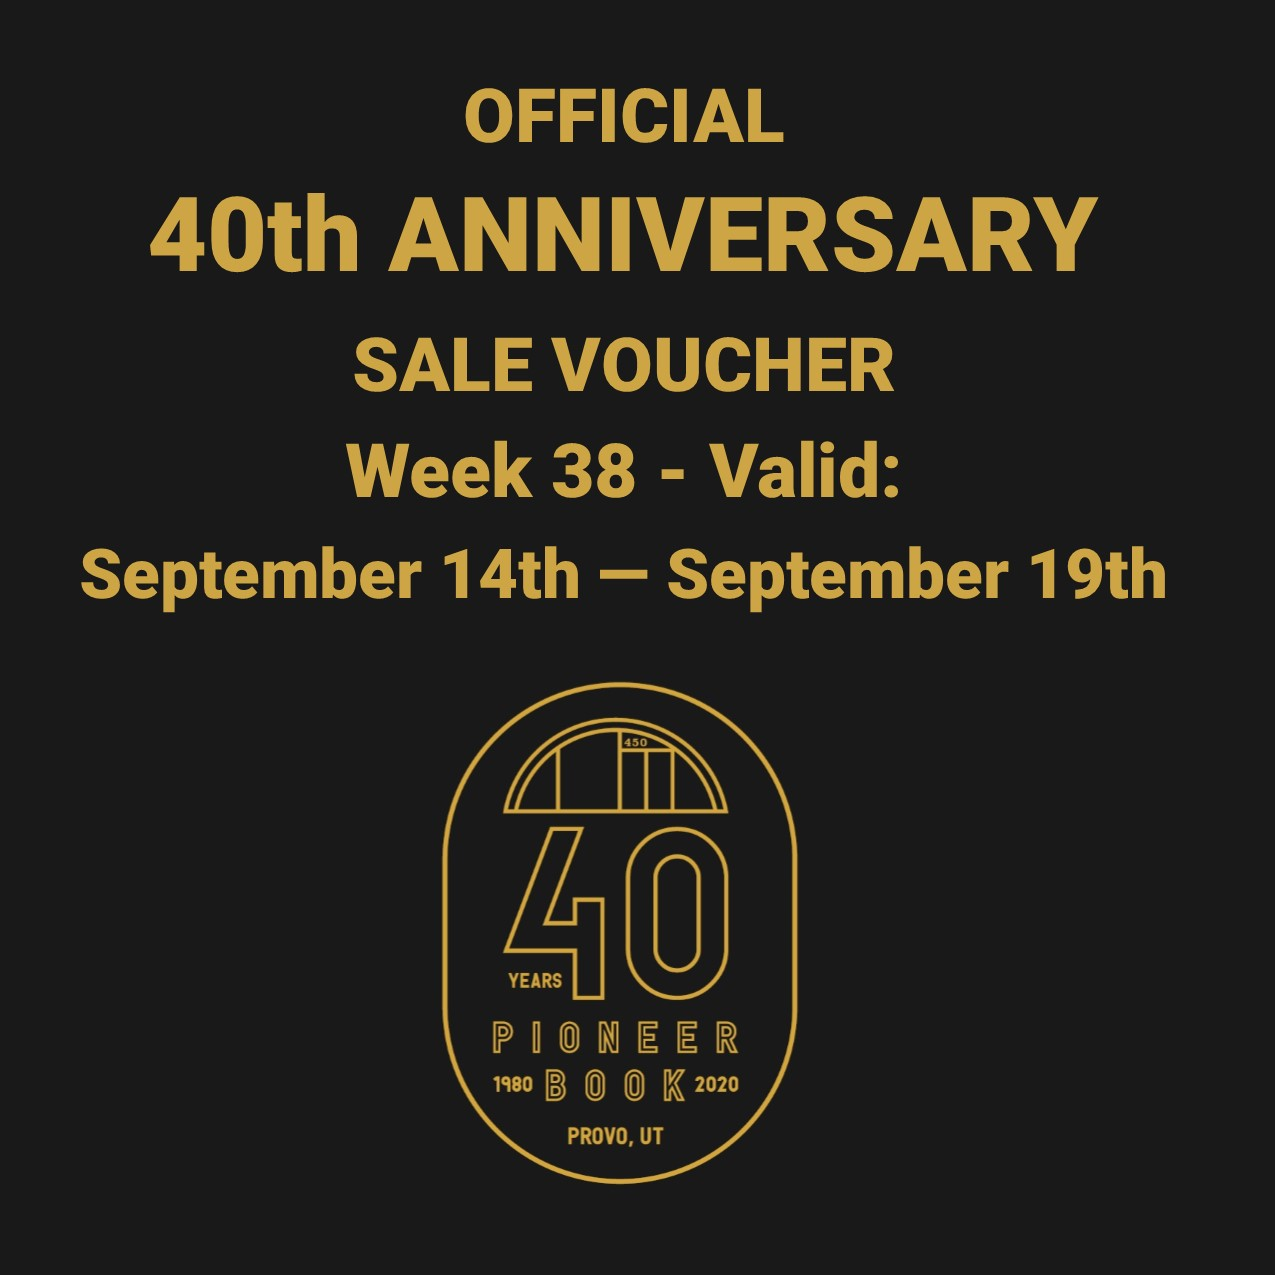 Image for 40th Anniversary Sale! Voucher - Week 38: September 14th - September 19th